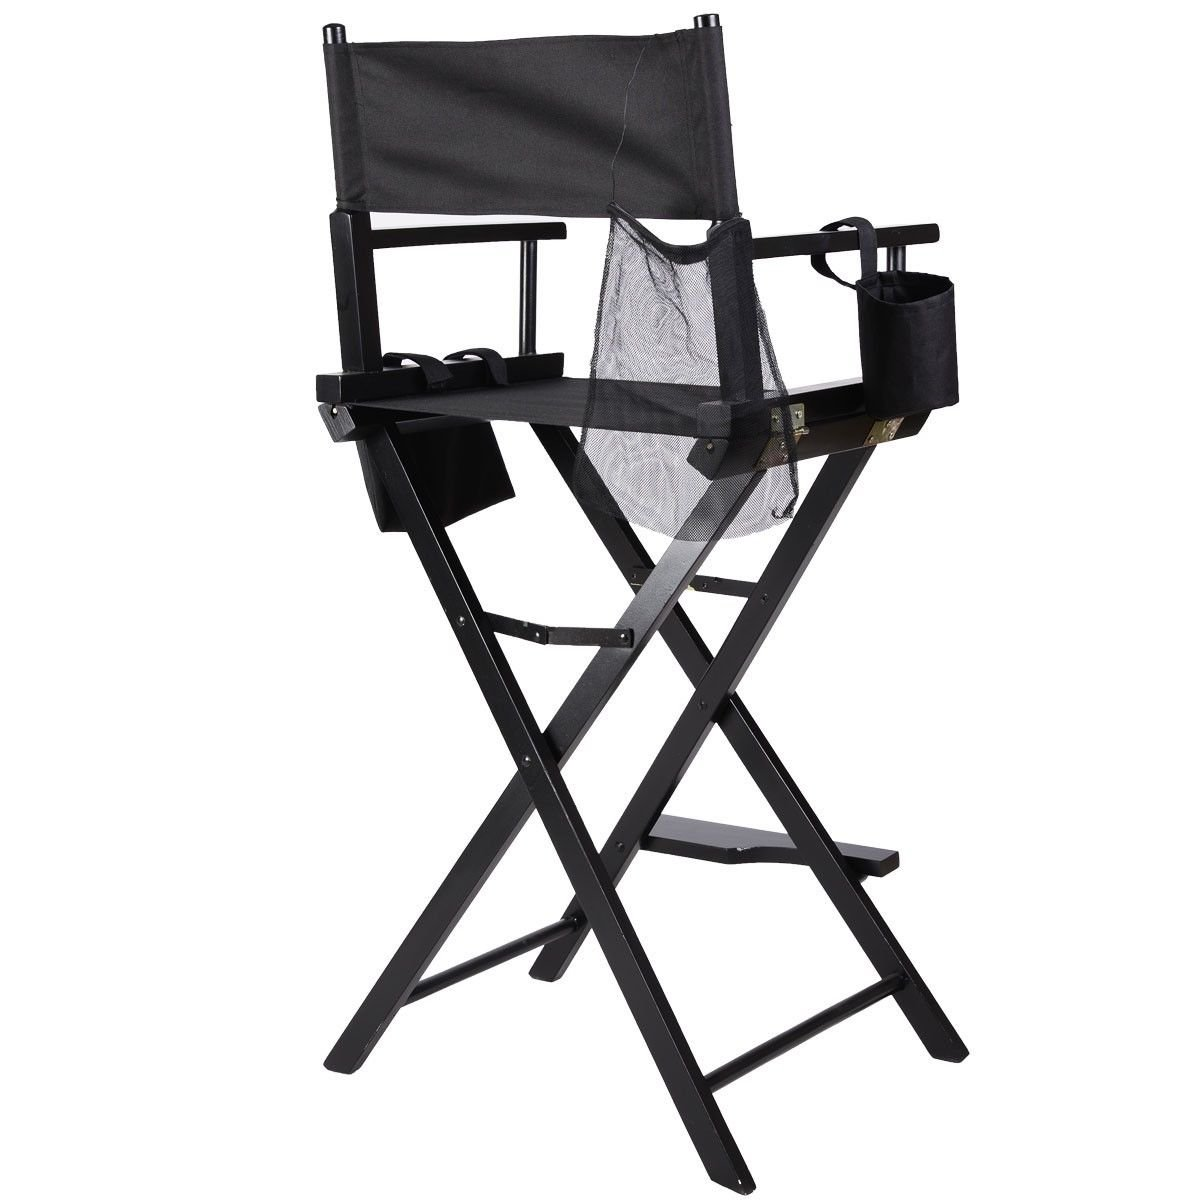 Black Foldable Professional Makeup Artist Directors Chair w/ Storage Side Bags